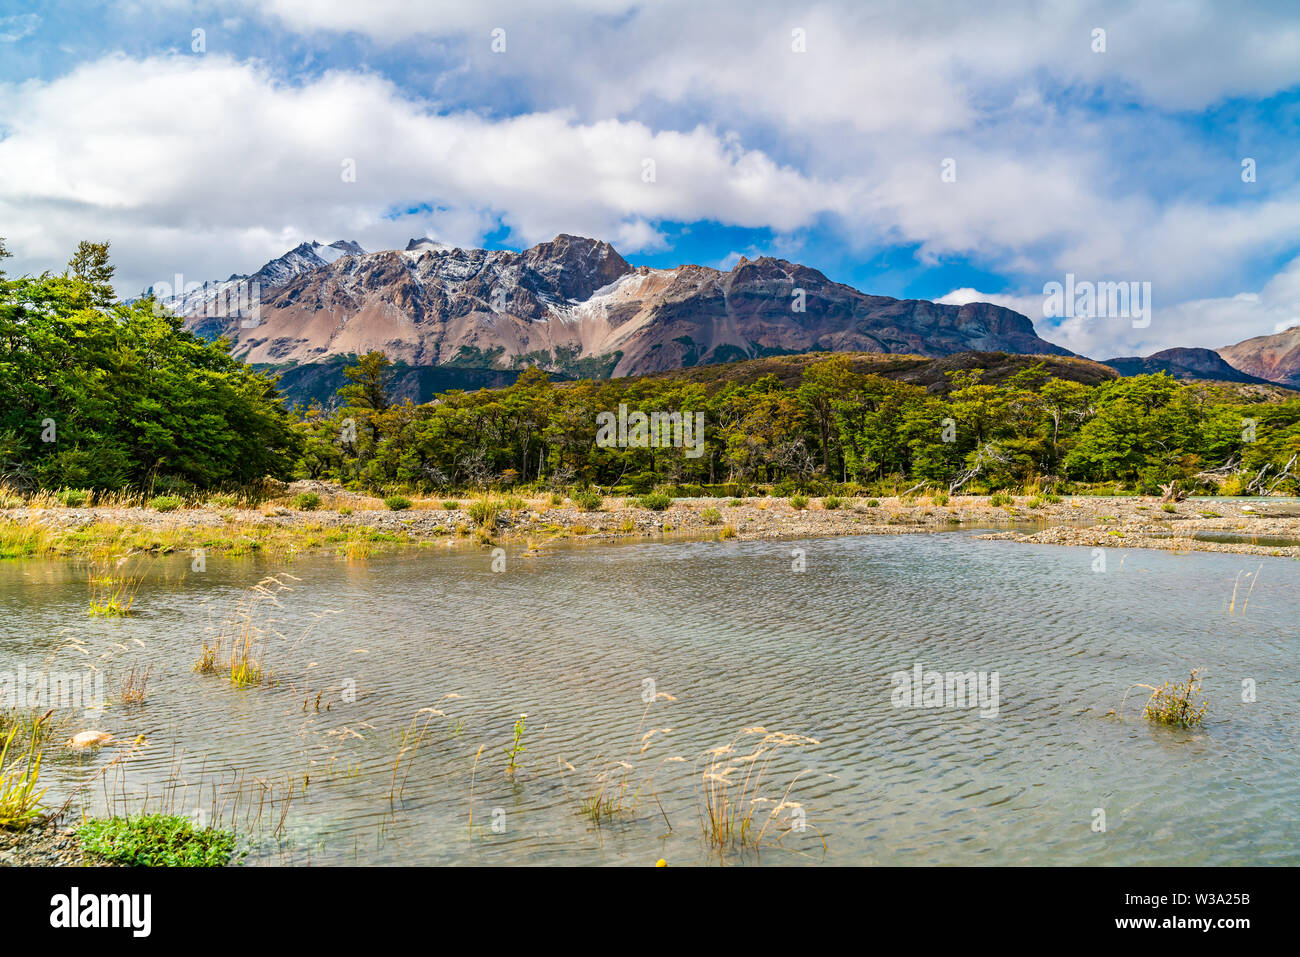 Scenic landscape of Los Glaciares National Park with beautiful mountain and river in El Chalten, Argentina - Stock Image